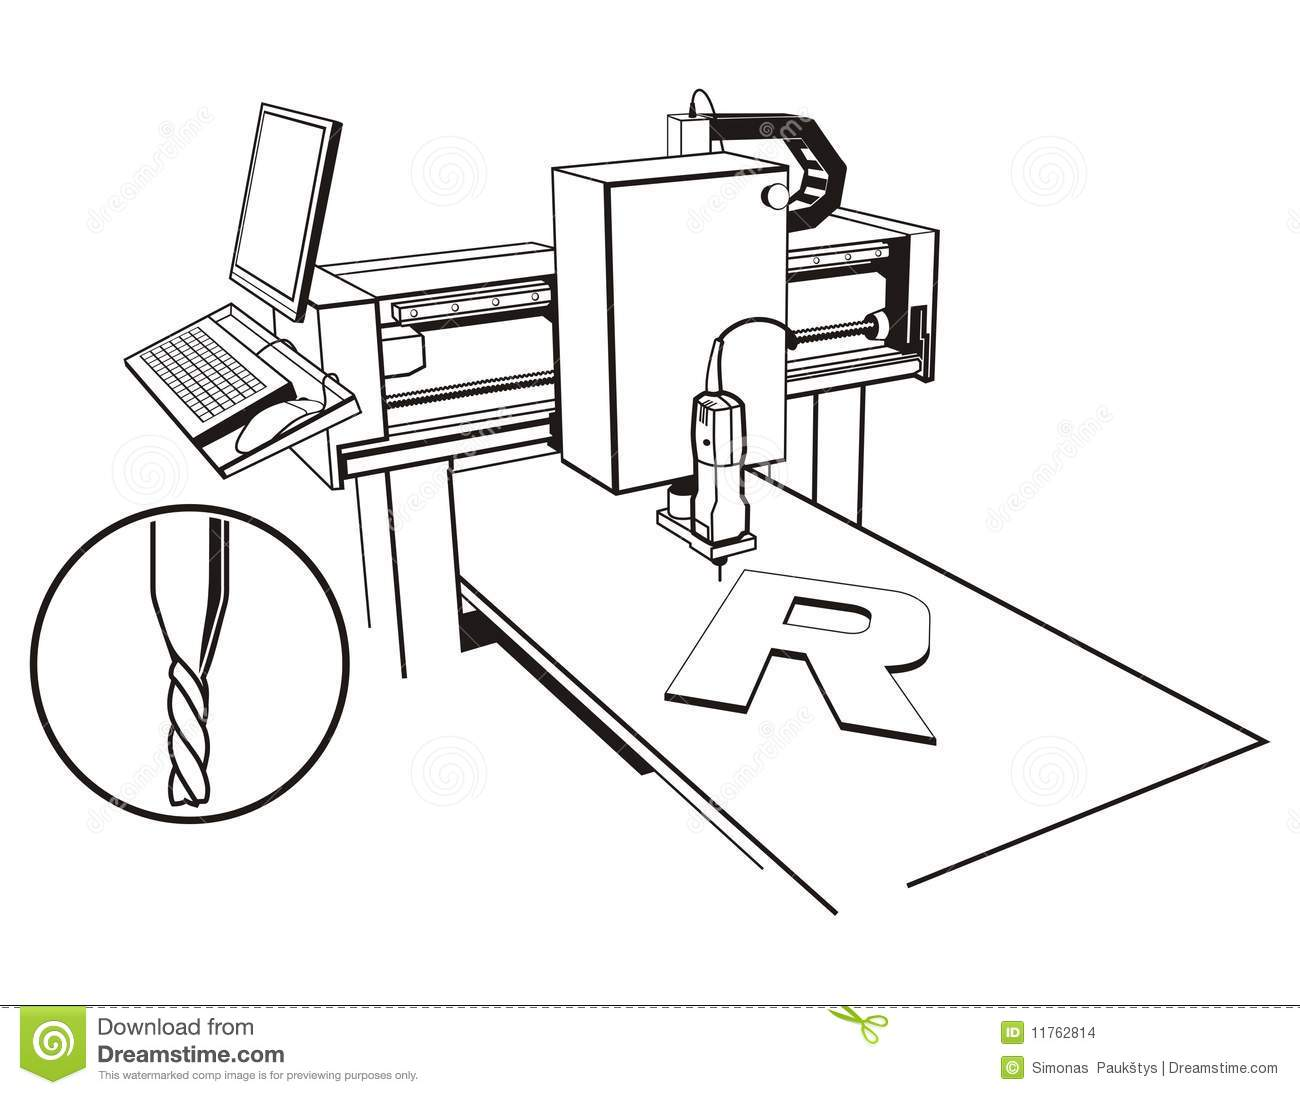 Cnc Stock Vector Illustration Of Graphic Work Isolated